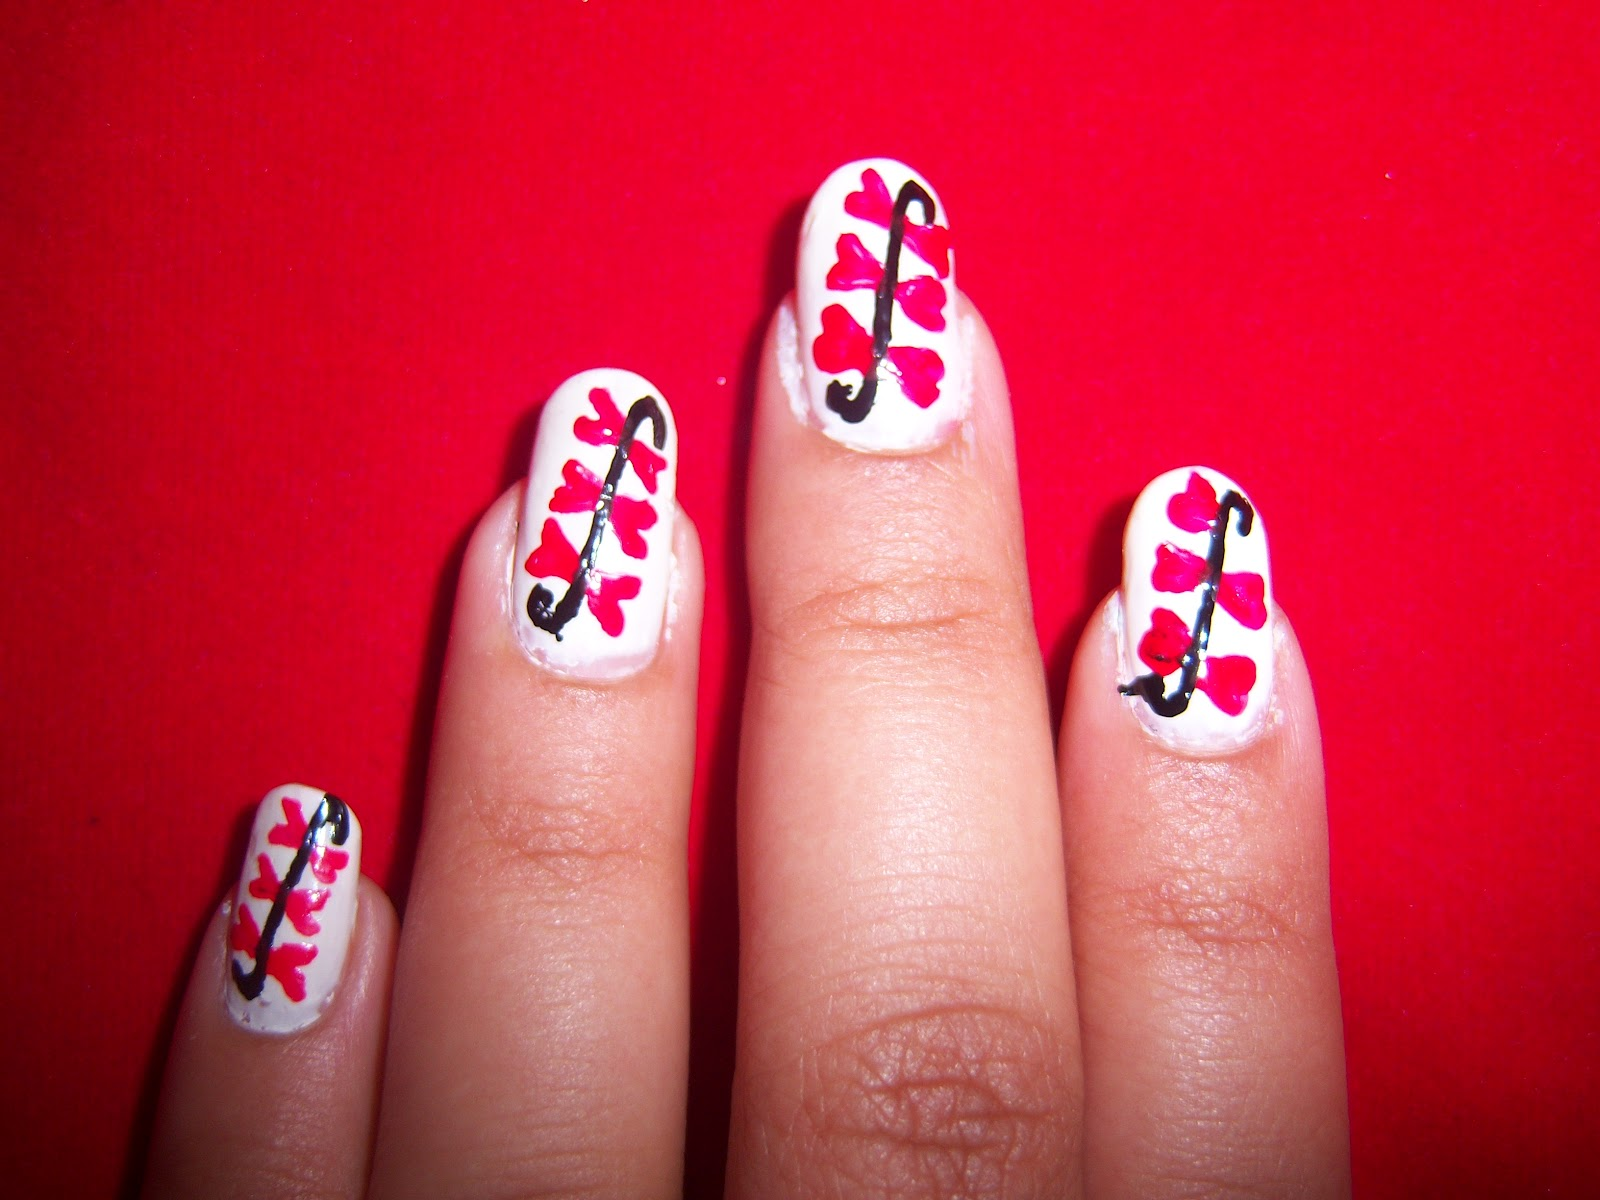 Saipriya Patel: Red amp; White nail art design